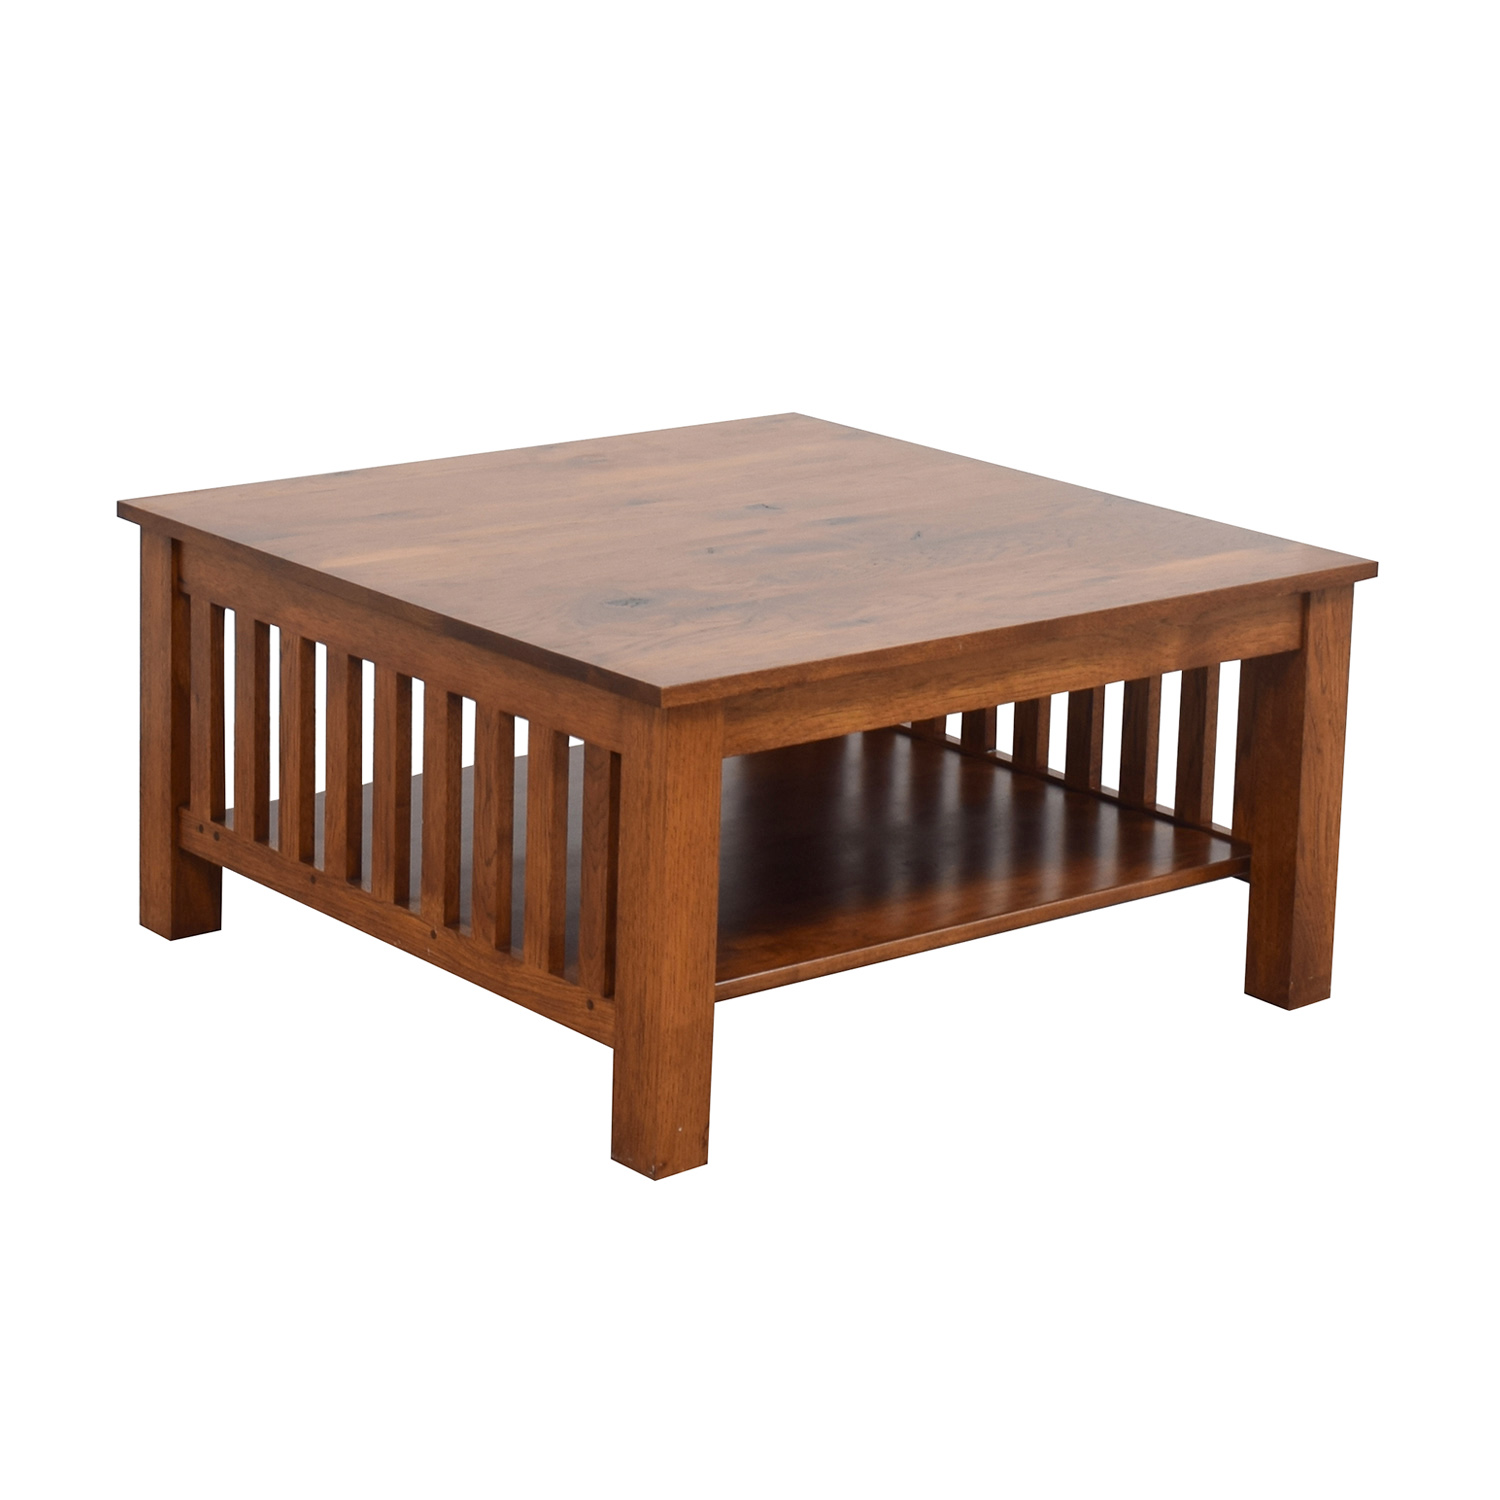 shop DutchCrafters DutchCrafters Square Coffee Table online